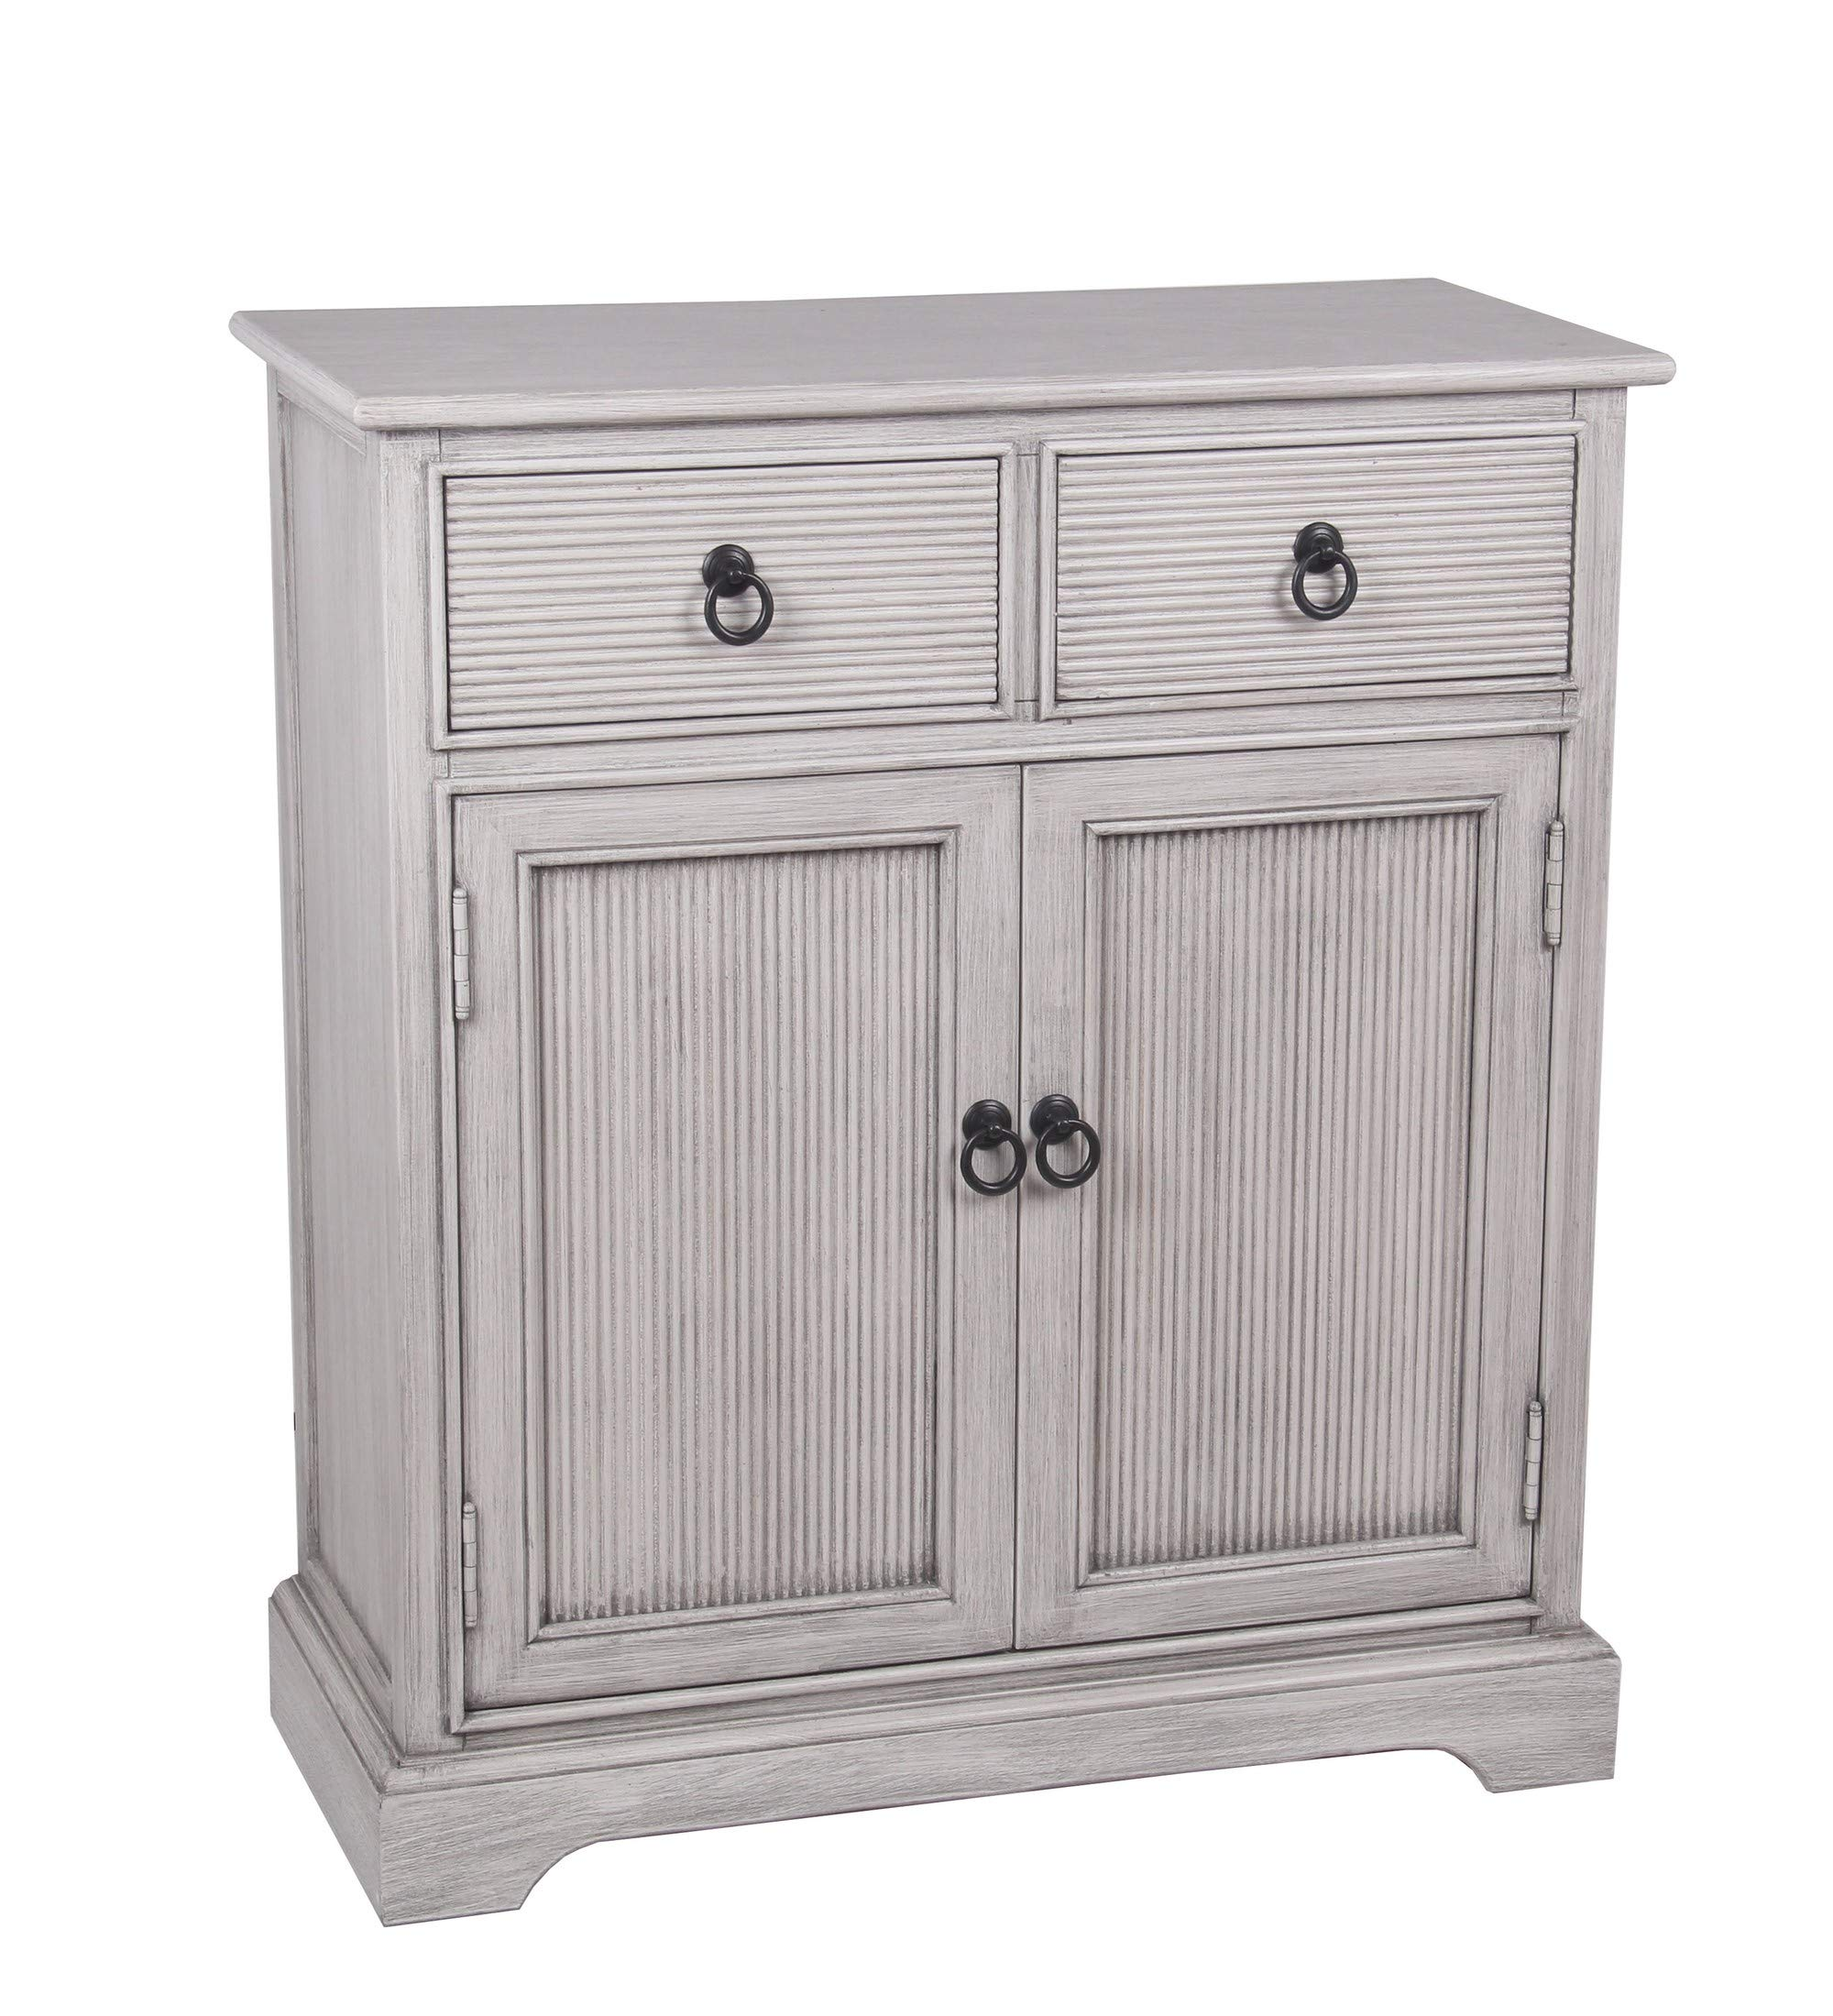 Privilege Winter Stone 2 Drawer and 2 Door Accent Chest 28633 by Privilege